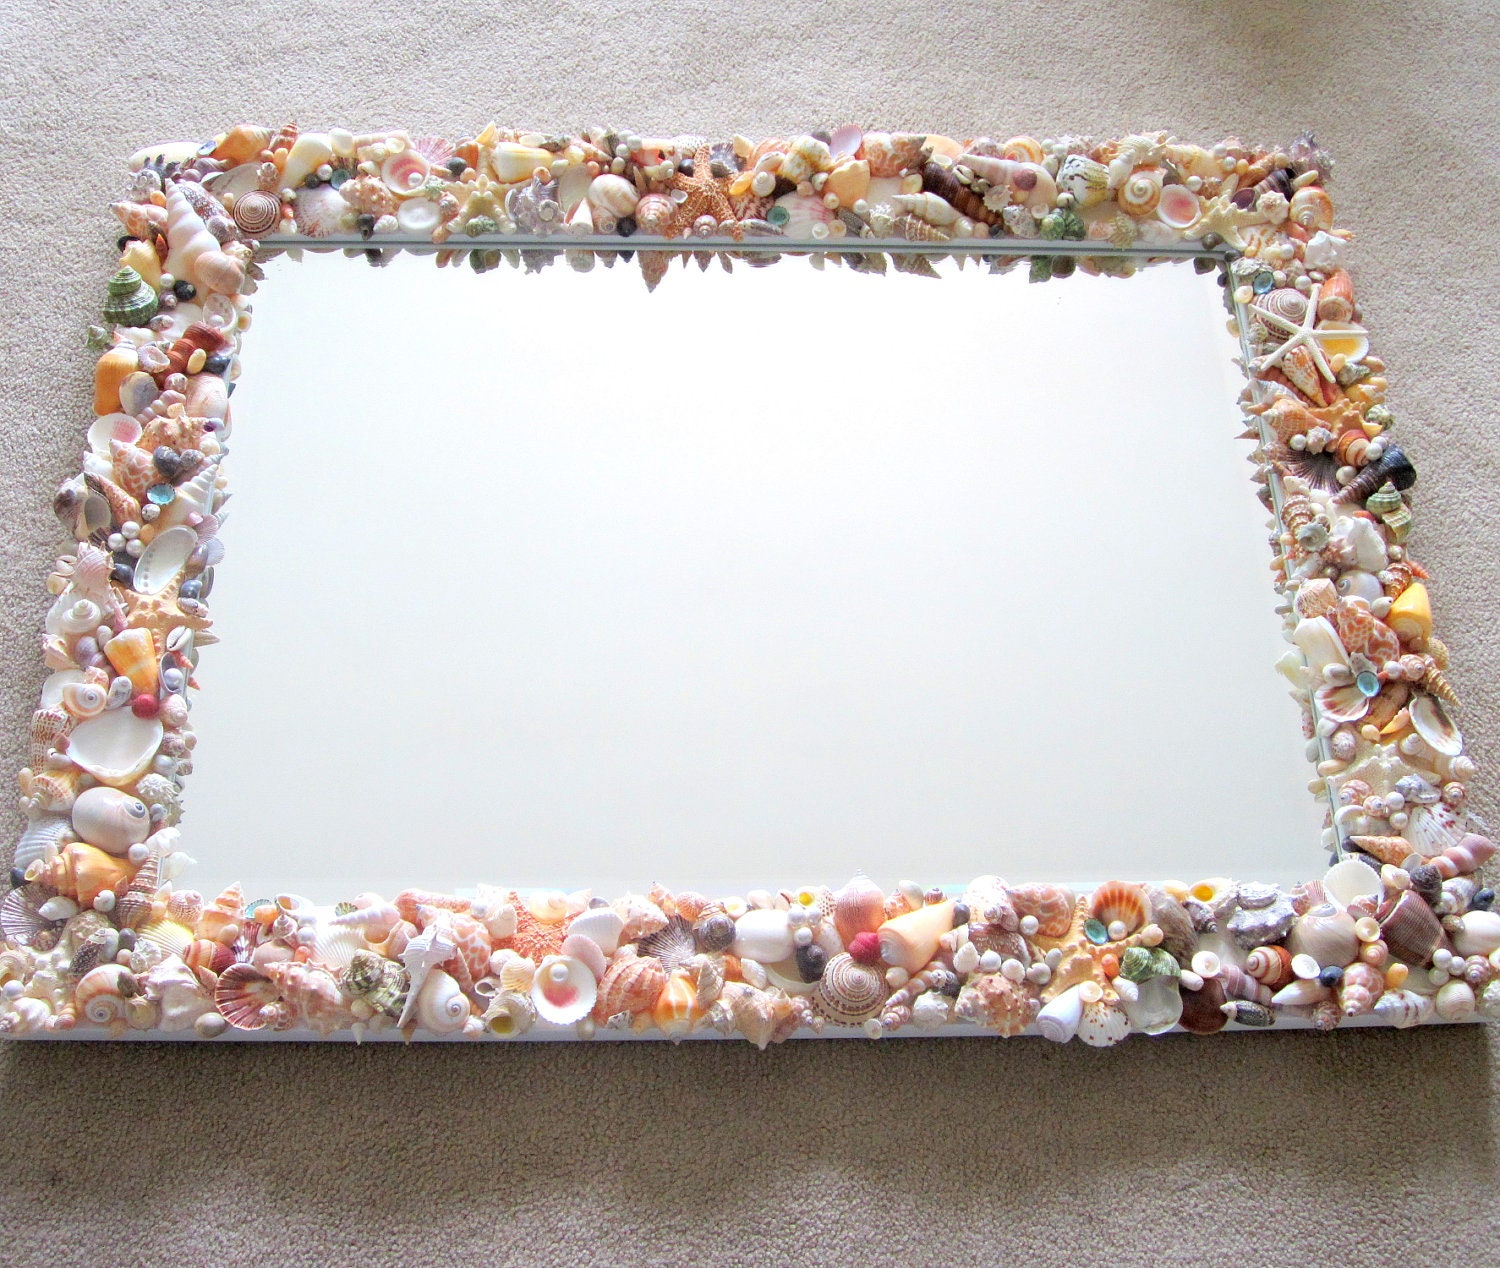 Beveled edge mirror  Etsy UK